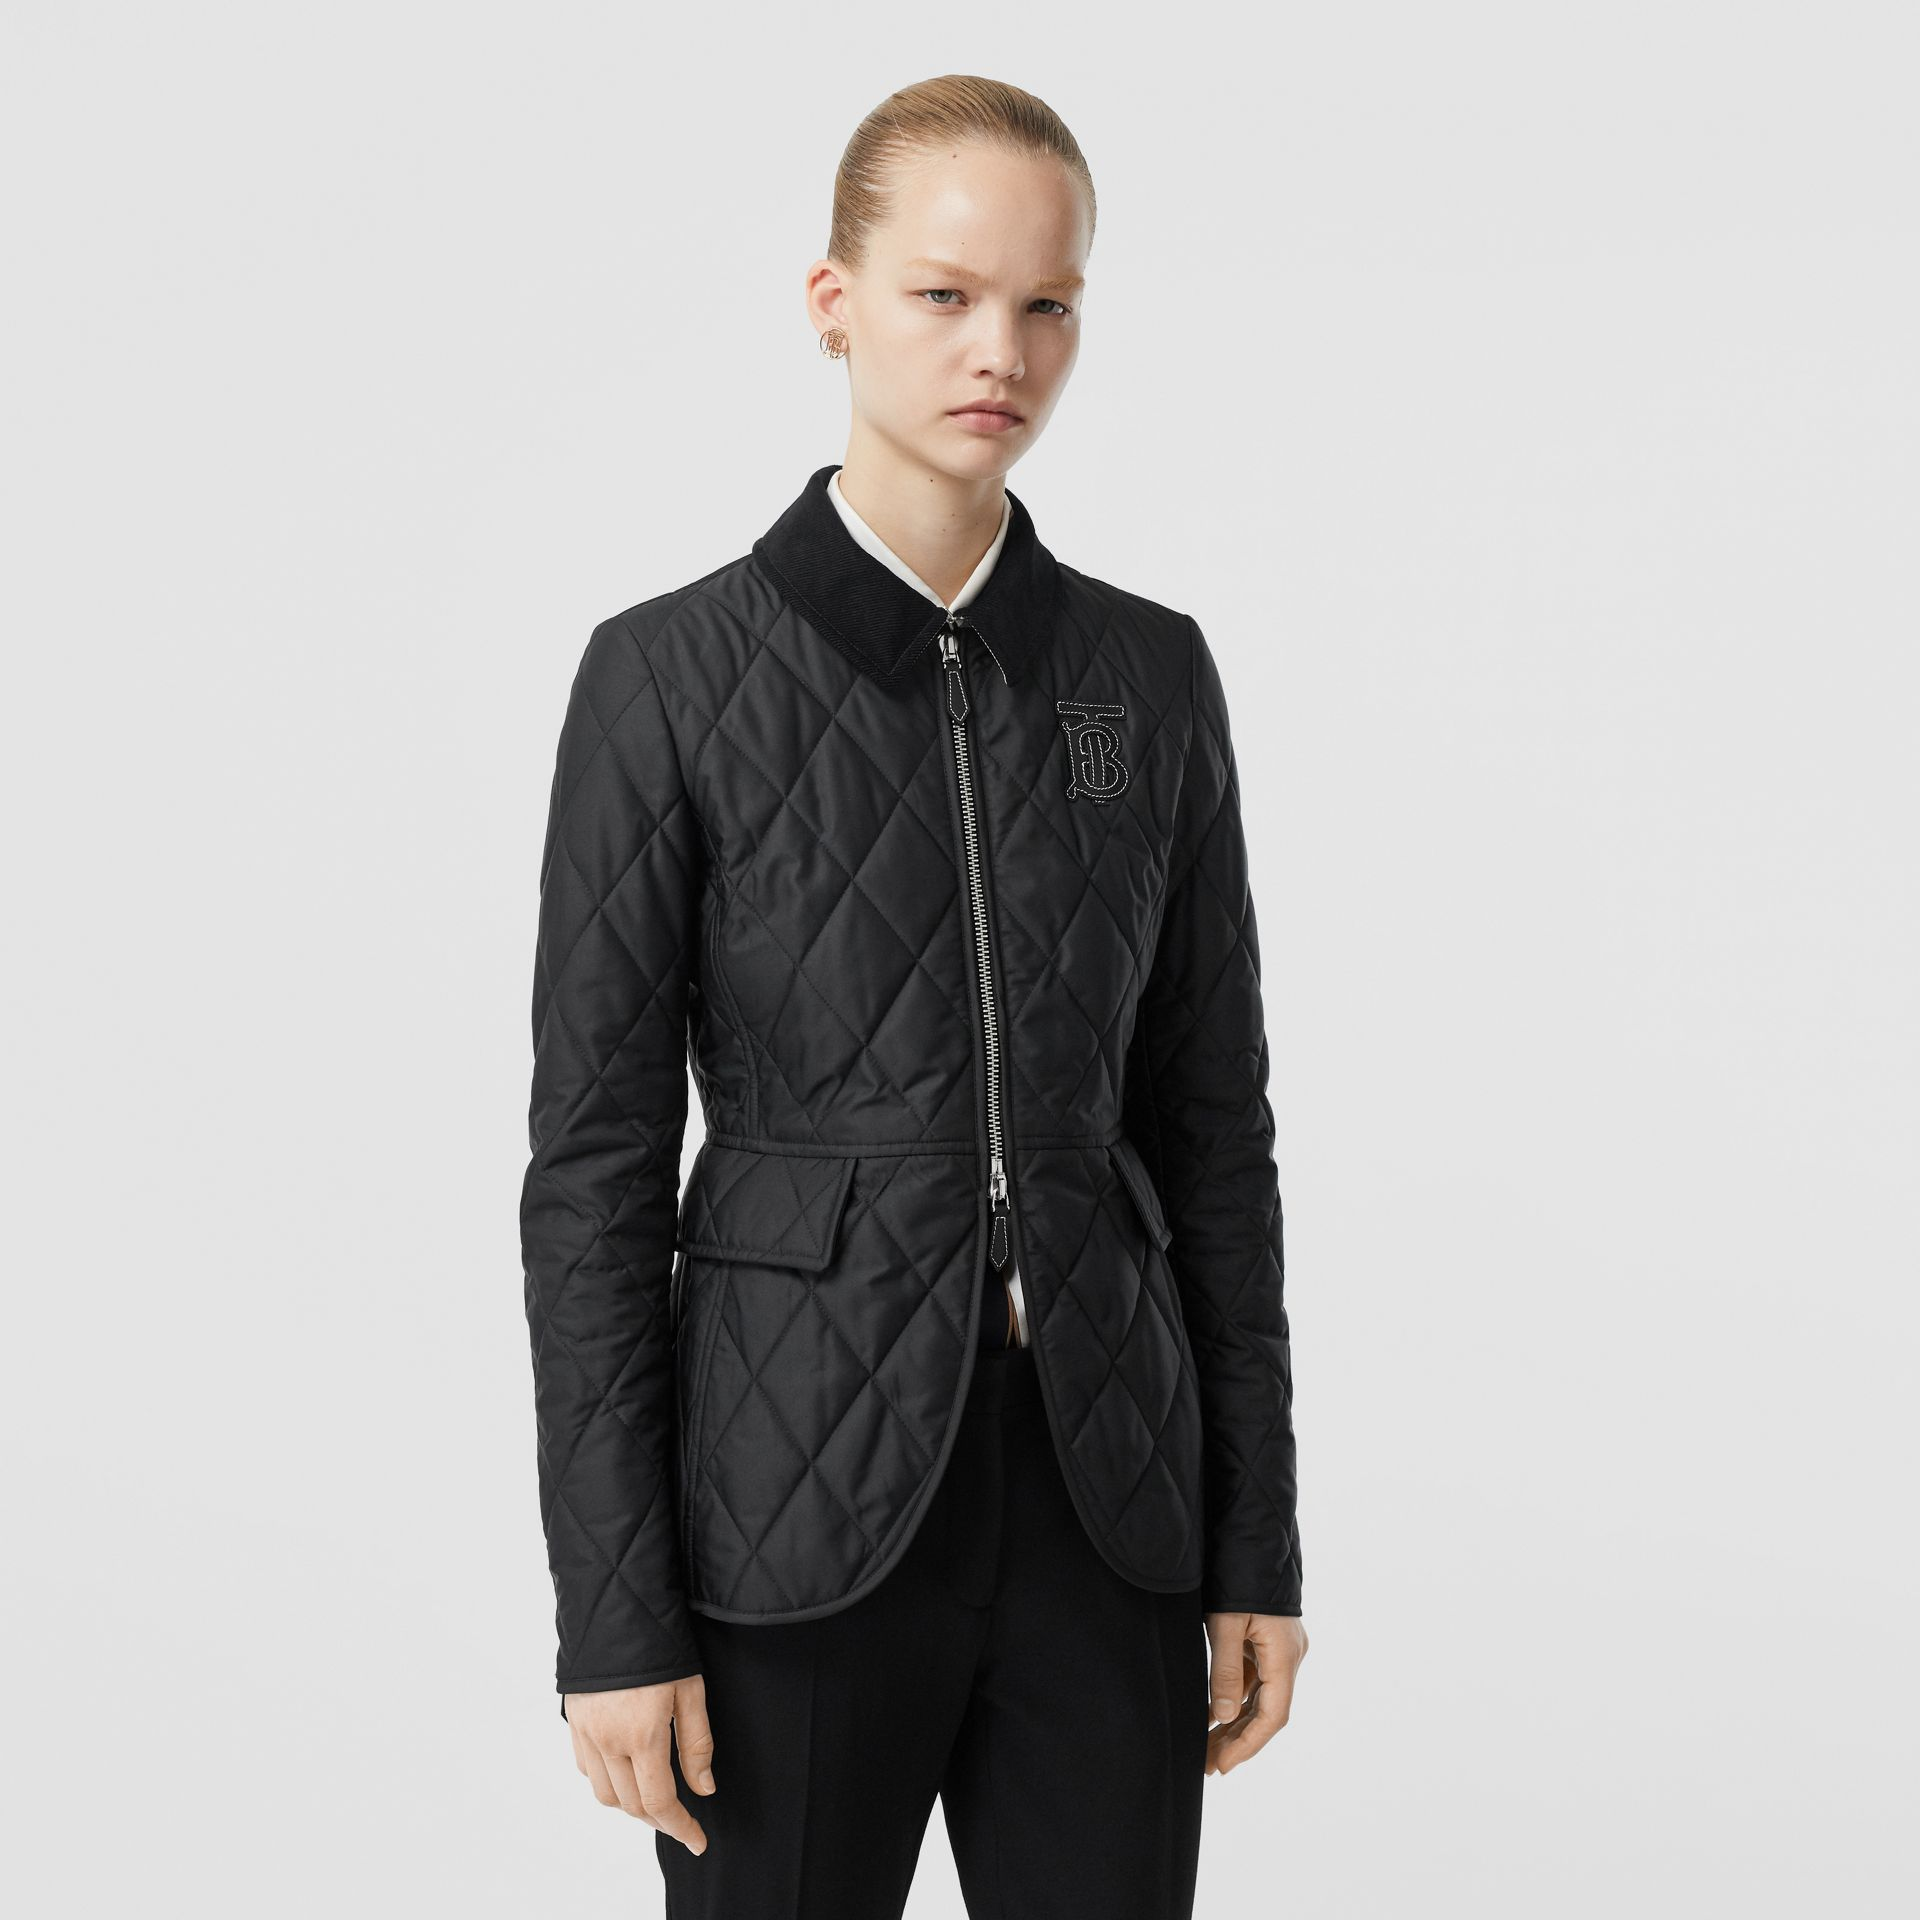 Monogram Motif Quilted Riding Jacket in Black - Women | Burberry - gallery image 5